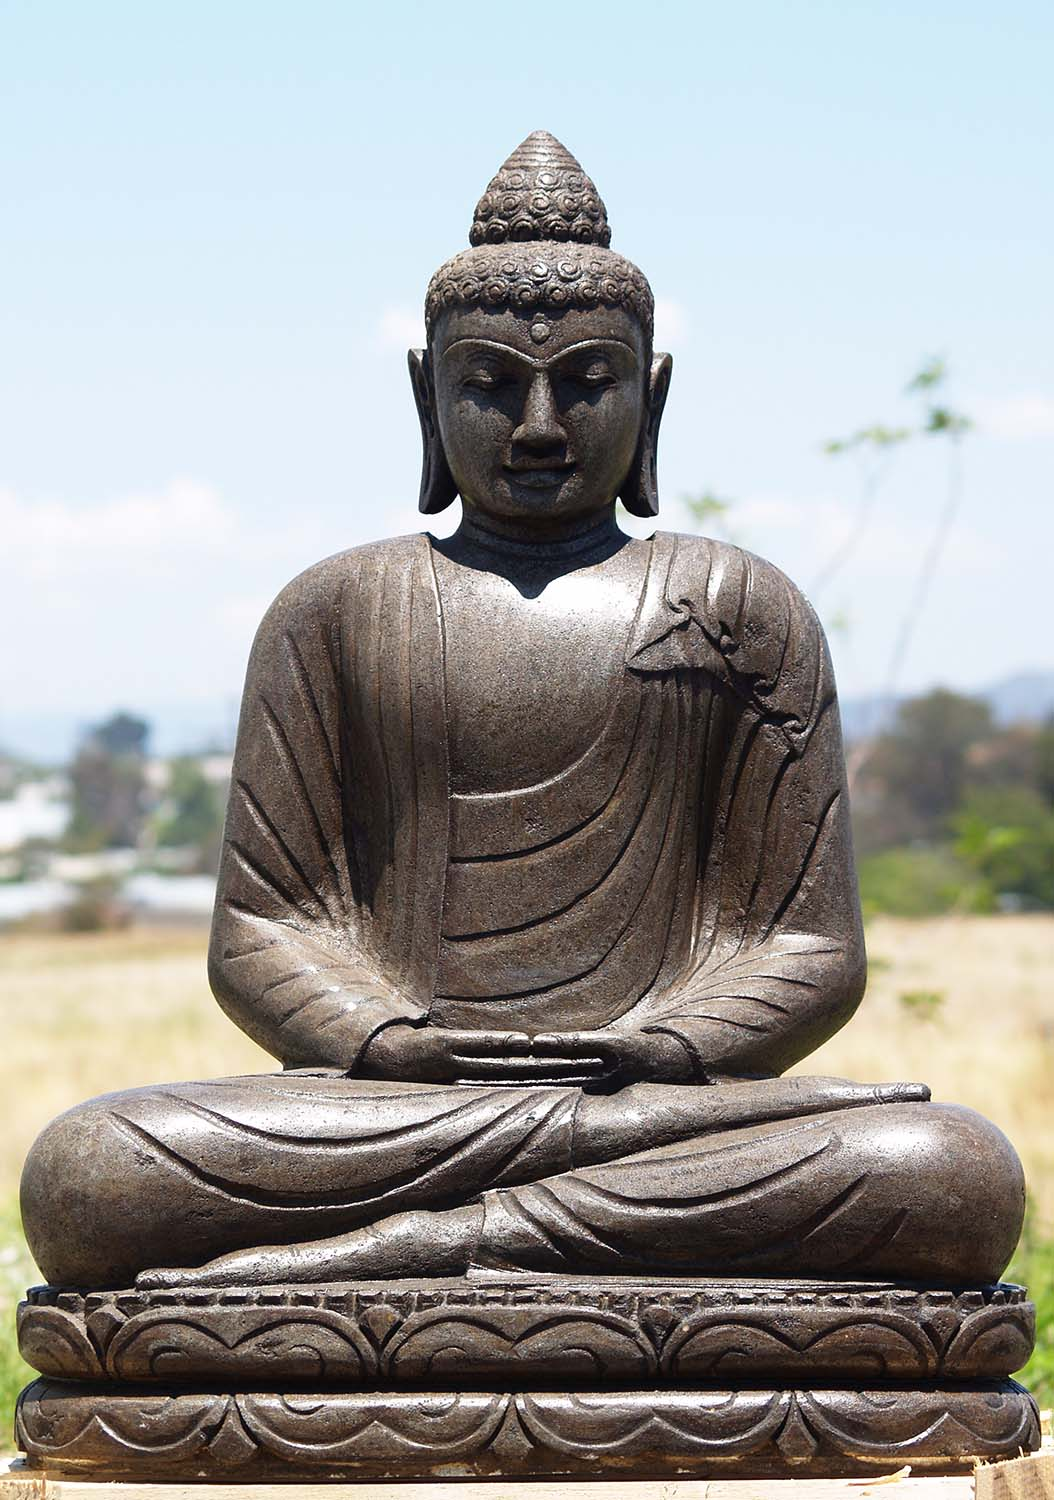 sold stone meditating buddha garden statue 31 86ls173. Black Bedroom Furniture Sets. Home Design Ideas